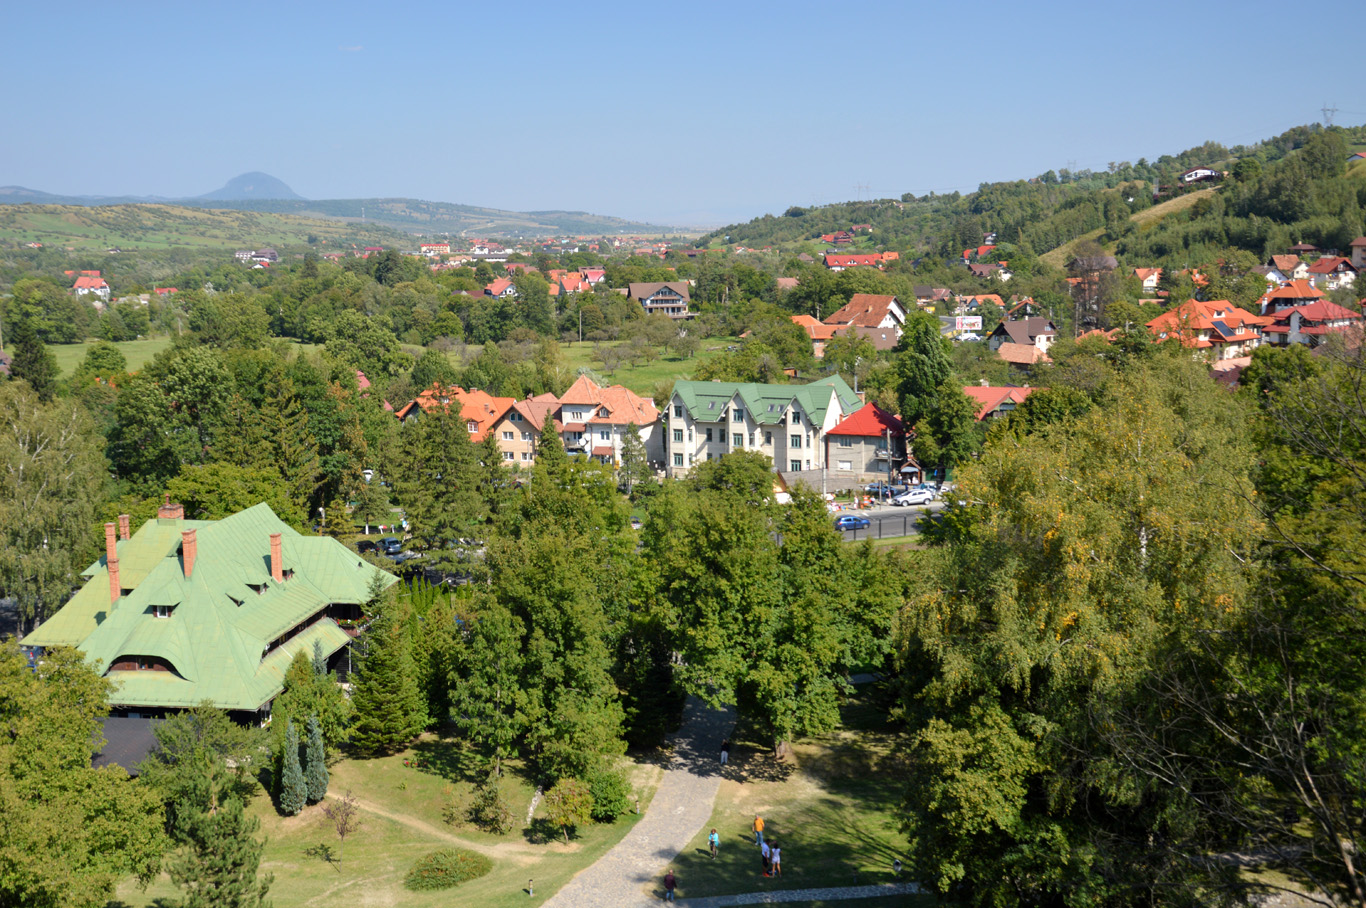 The village seen from the castle